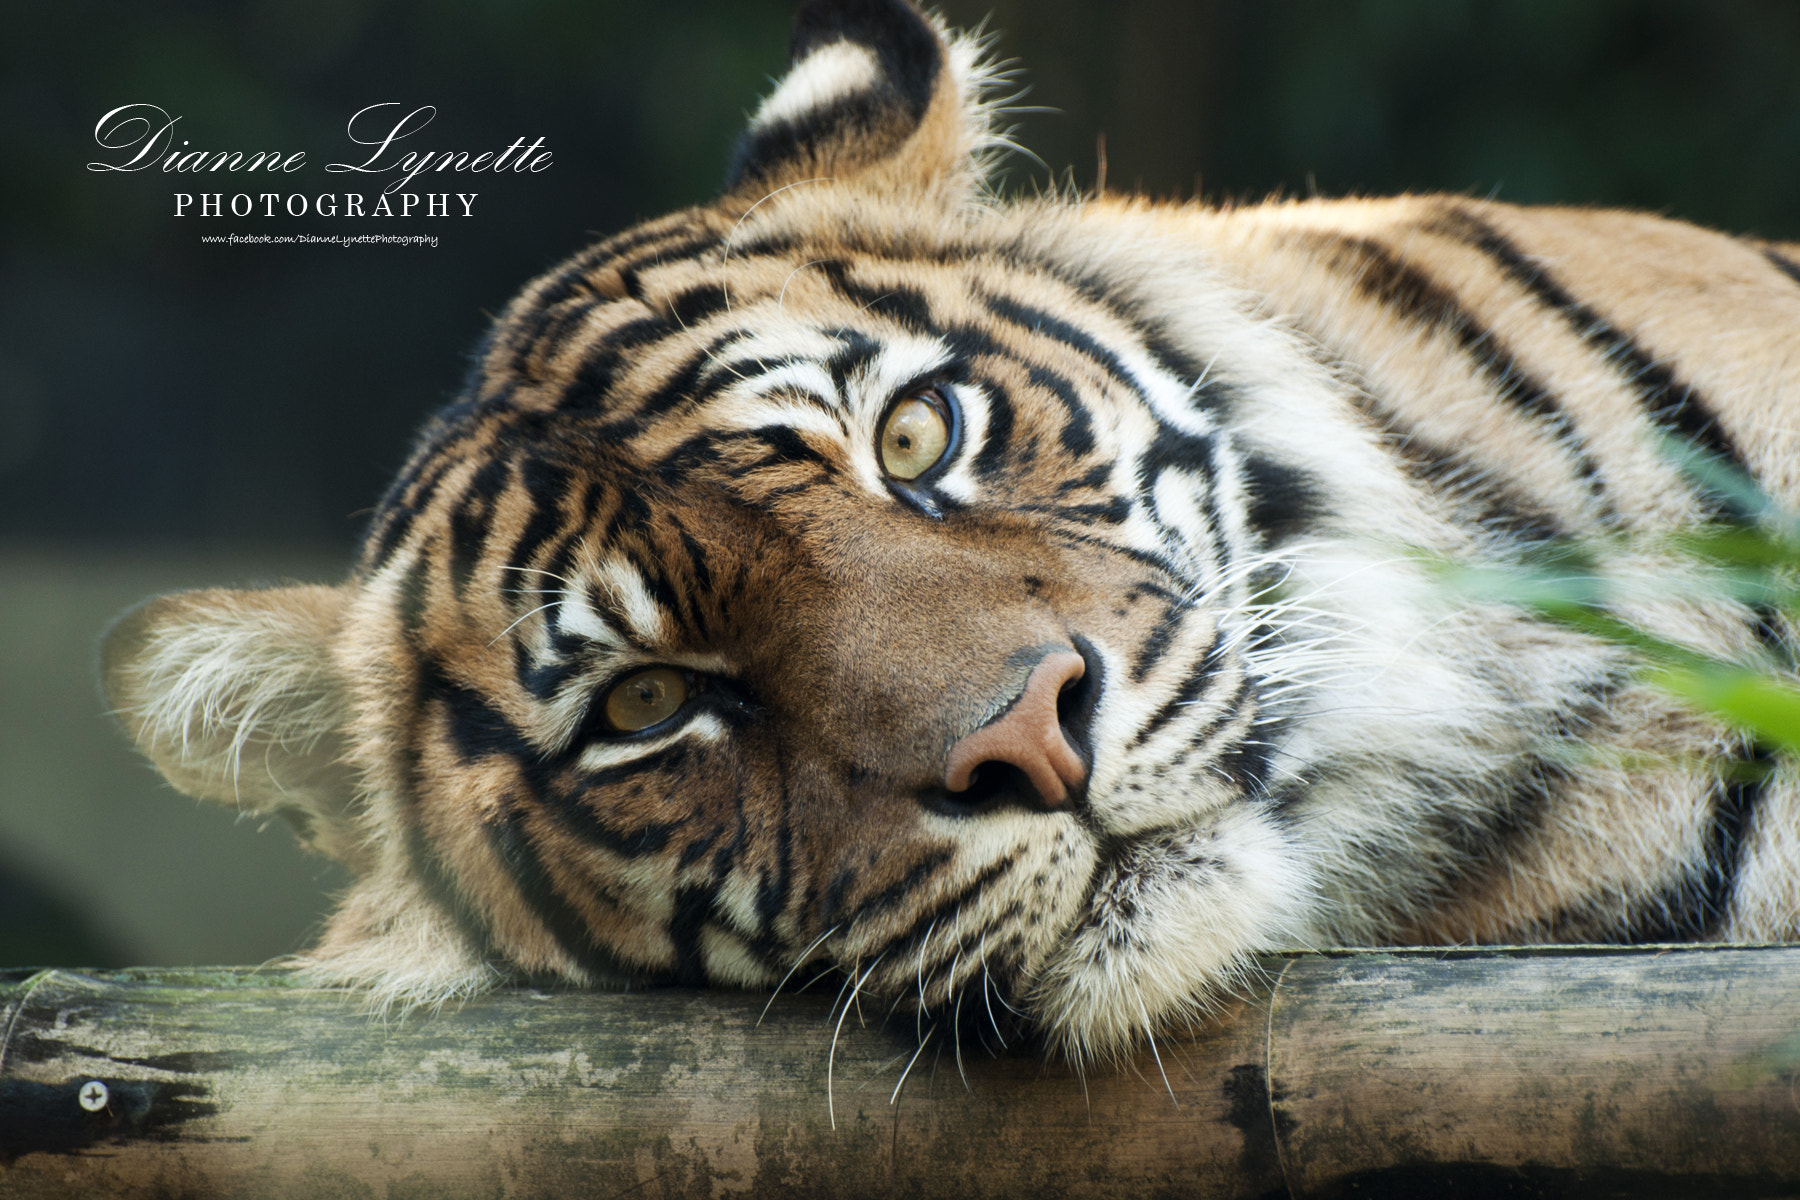 Photograph Tiger by Dianne Lynette on 500px